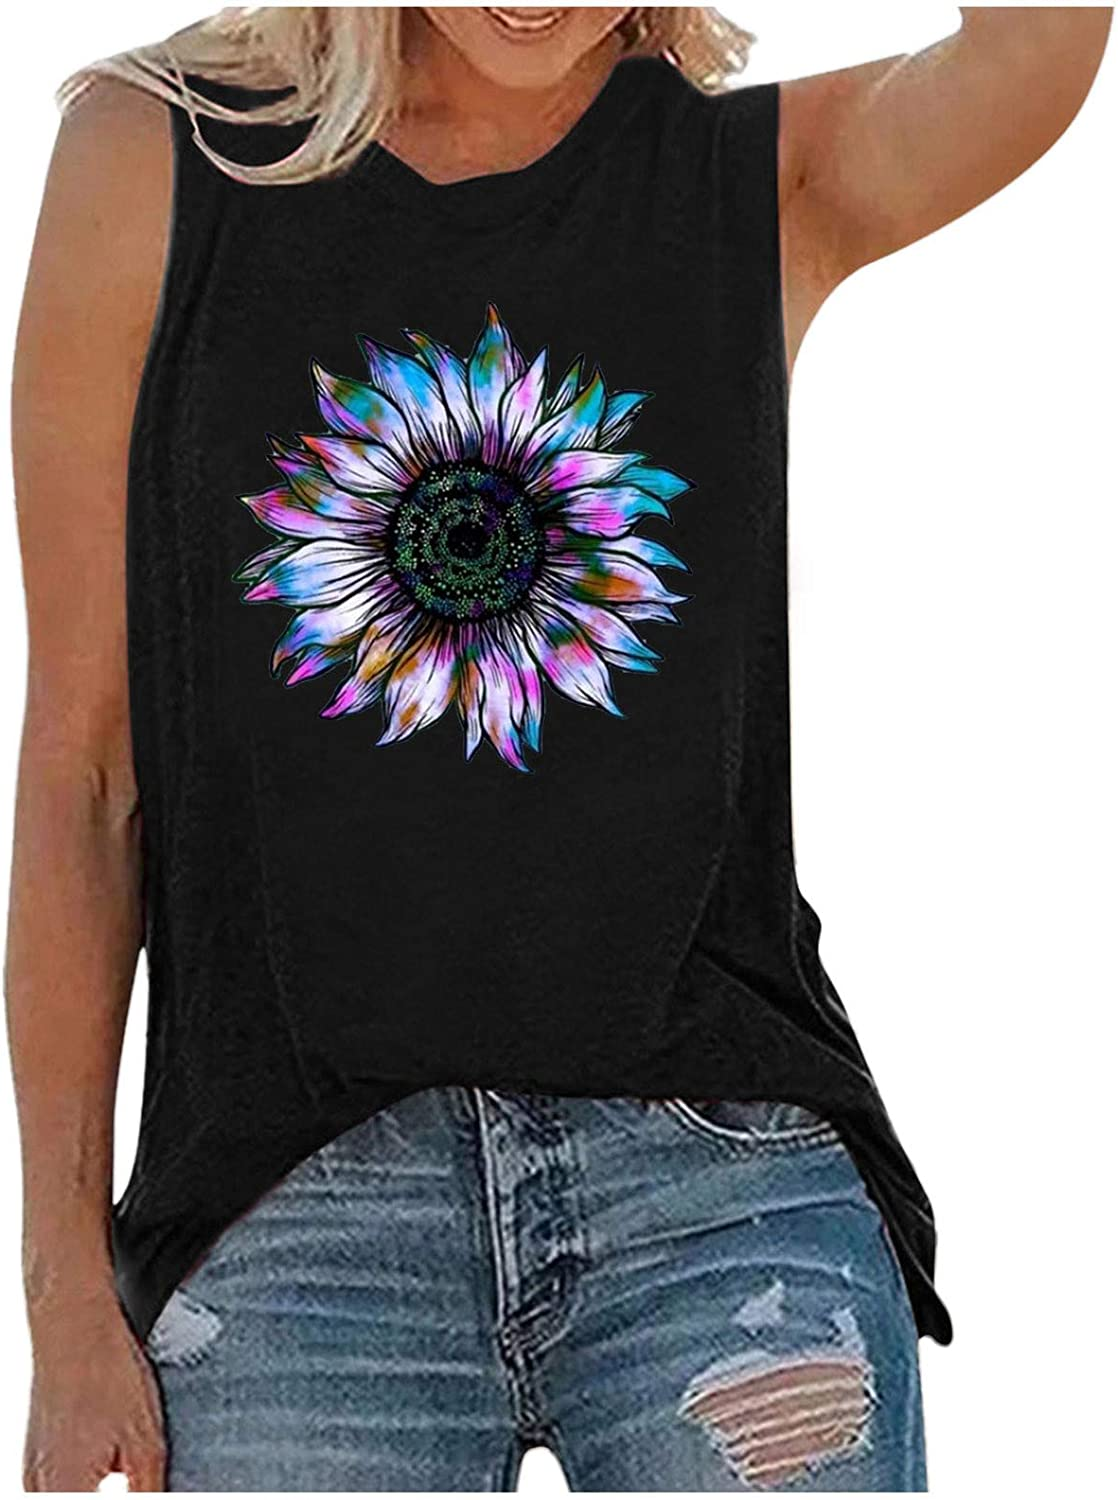 nunonette Tank Tops Sales of SALE items from Large special price !! new works for Women Sunflower Sleeveless Workout Print